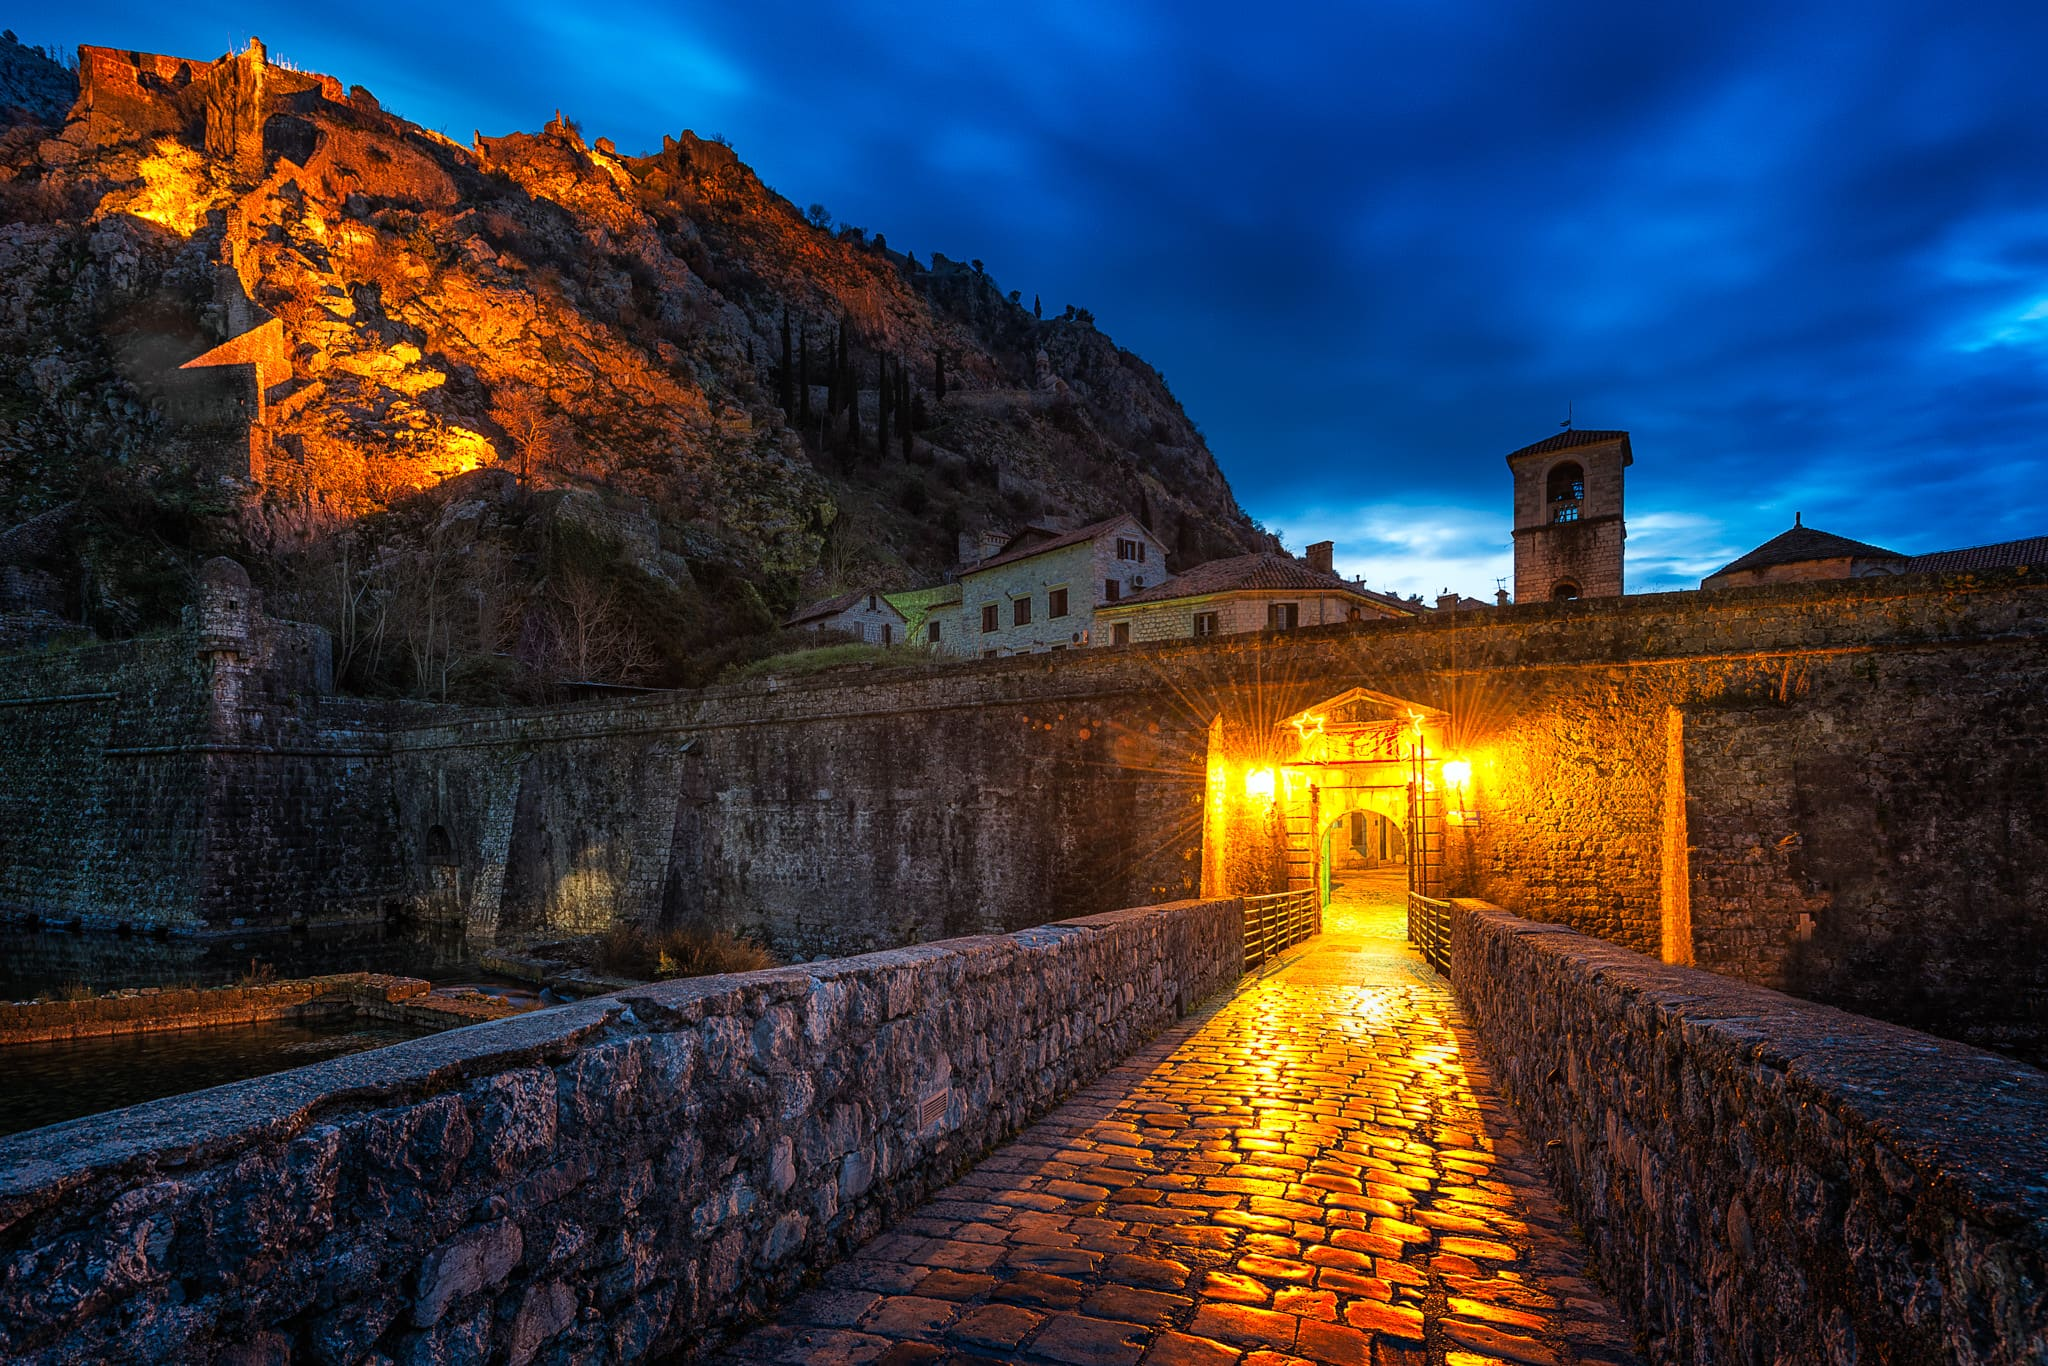 Kotor Northern Gate before sunrise | Kotor, Montenegro